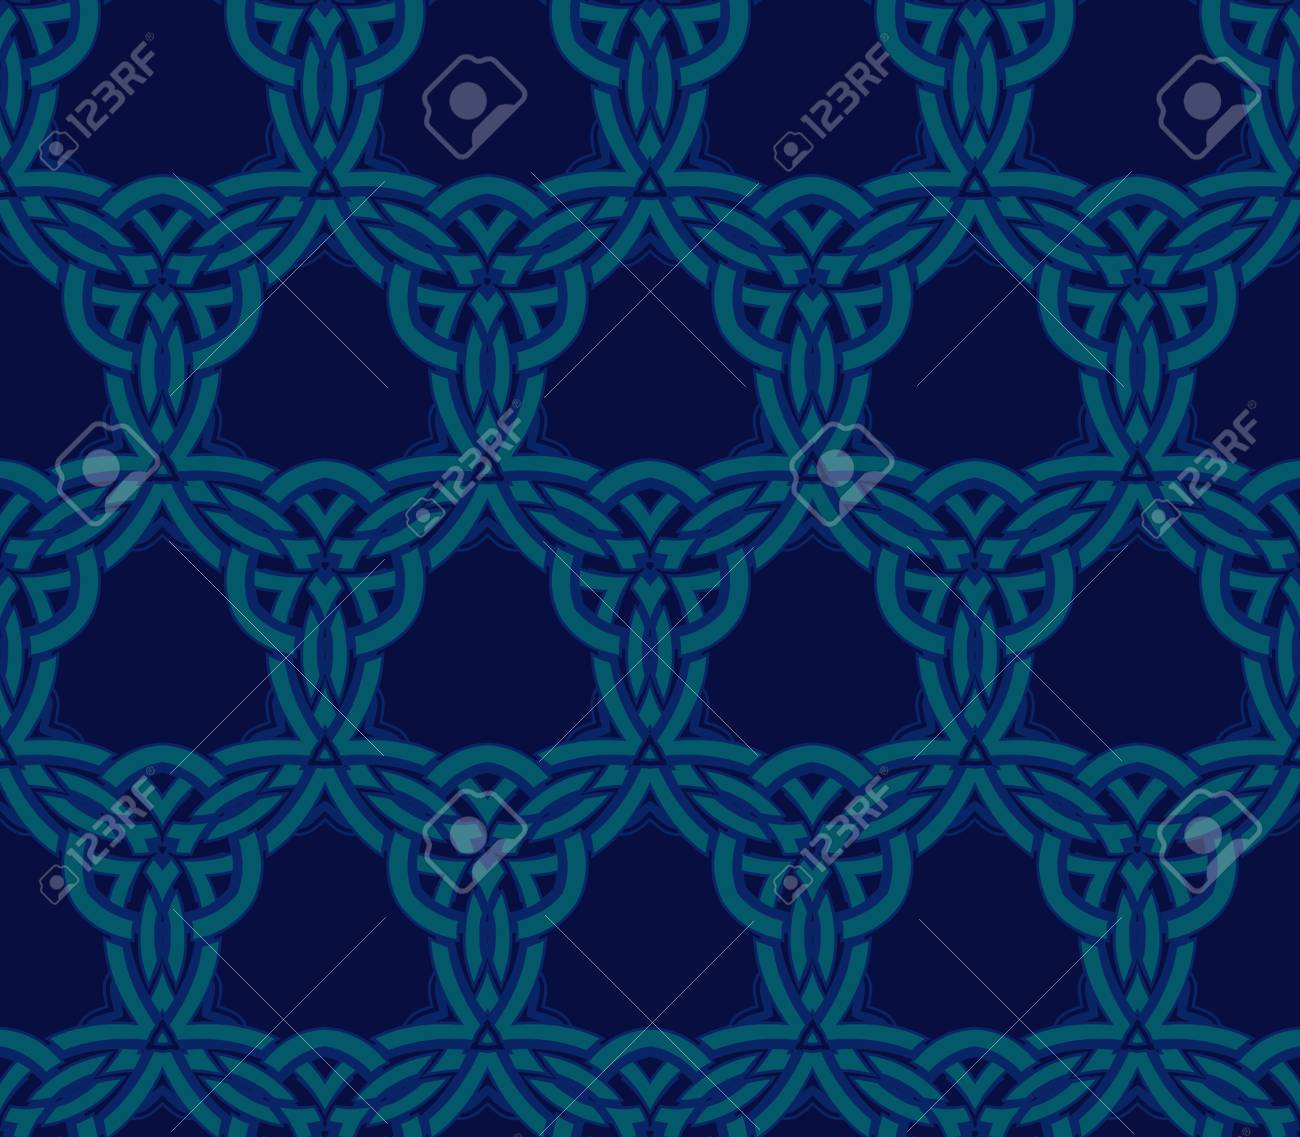 abstract pattern wallpaper seamless background Stock Vector - 14387035